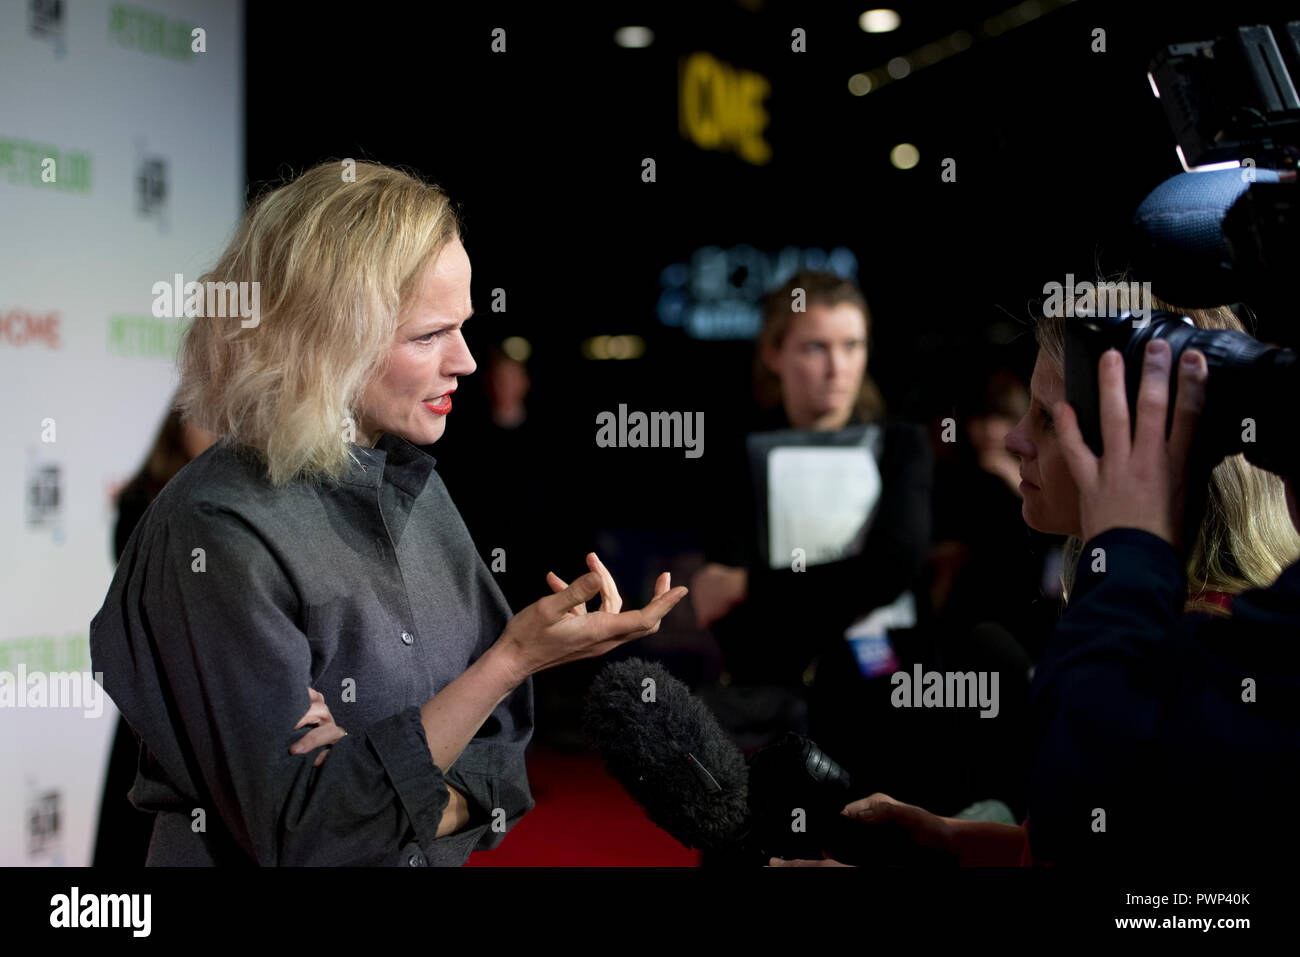 Manchester, UK. 17th October 2018. Actress Maxine Peake who plays the character Nellie speaks to the media at the BFI London Film Festival premiere of Peterloo, at the Home complex in Manchester. Credit: Russell Hart/Alamy Live News - Stock Image